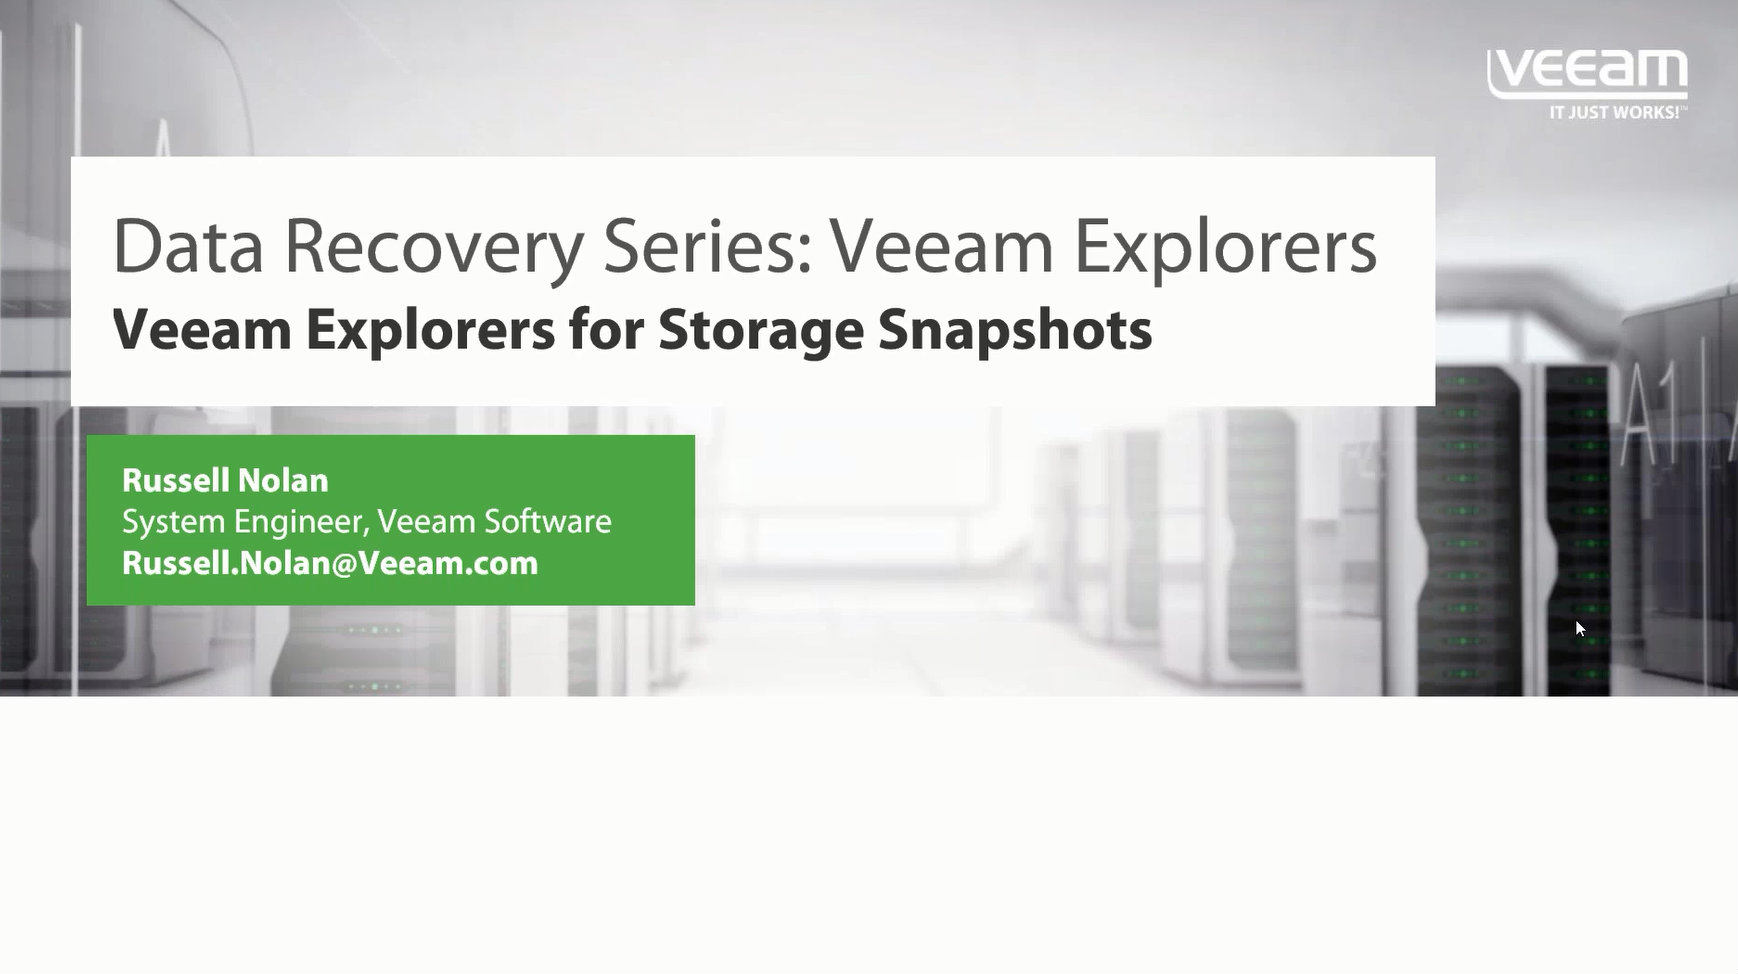 Data Recovery Series in 15 min: Veeam Explorers for Storage Snapshots